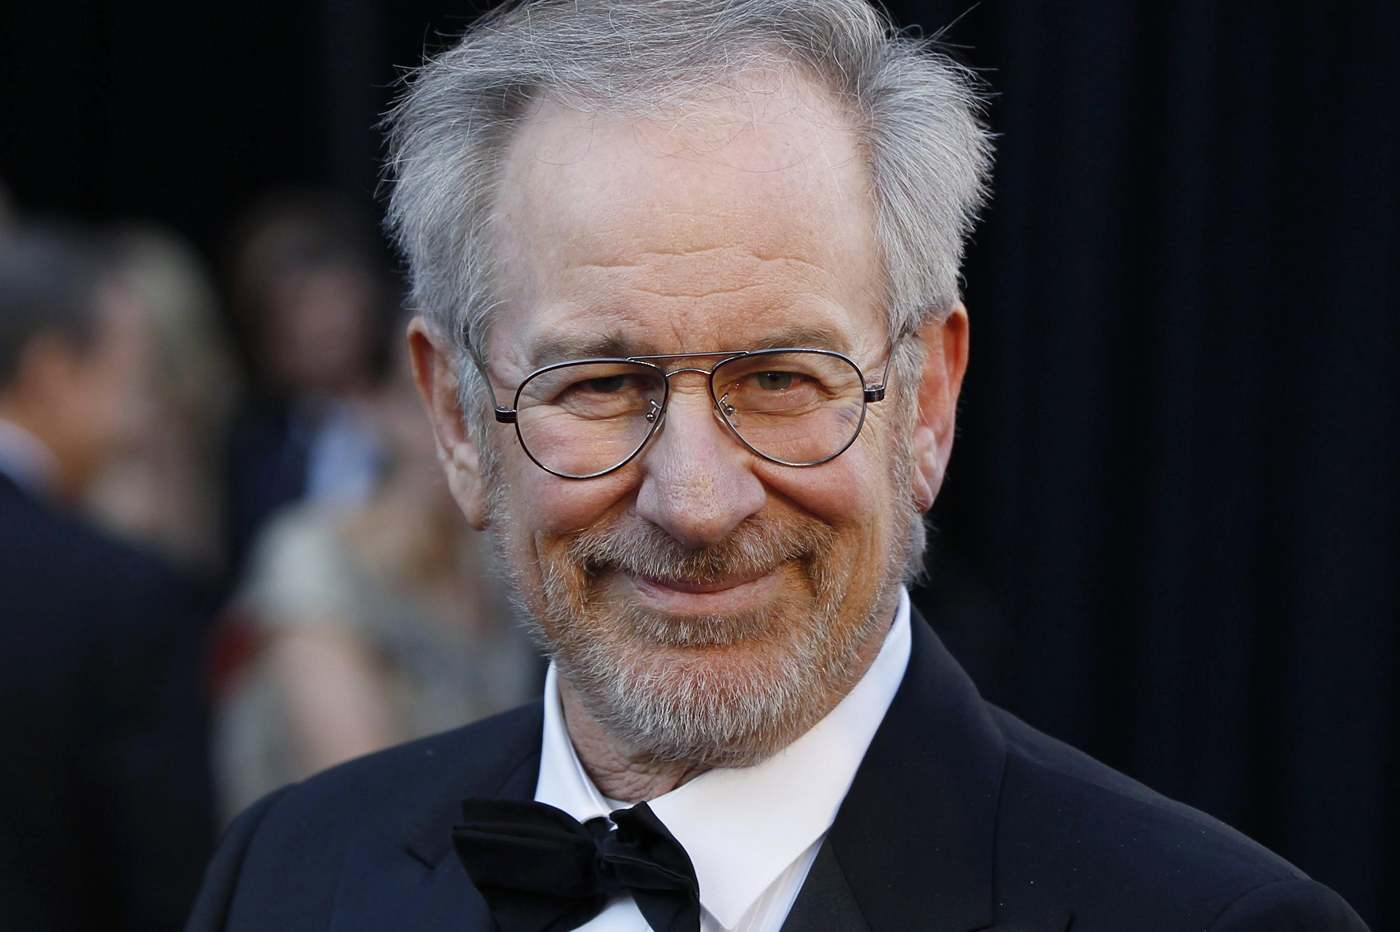 Download Free Modern Steven Spielberg The Wallpapers 2253x1884